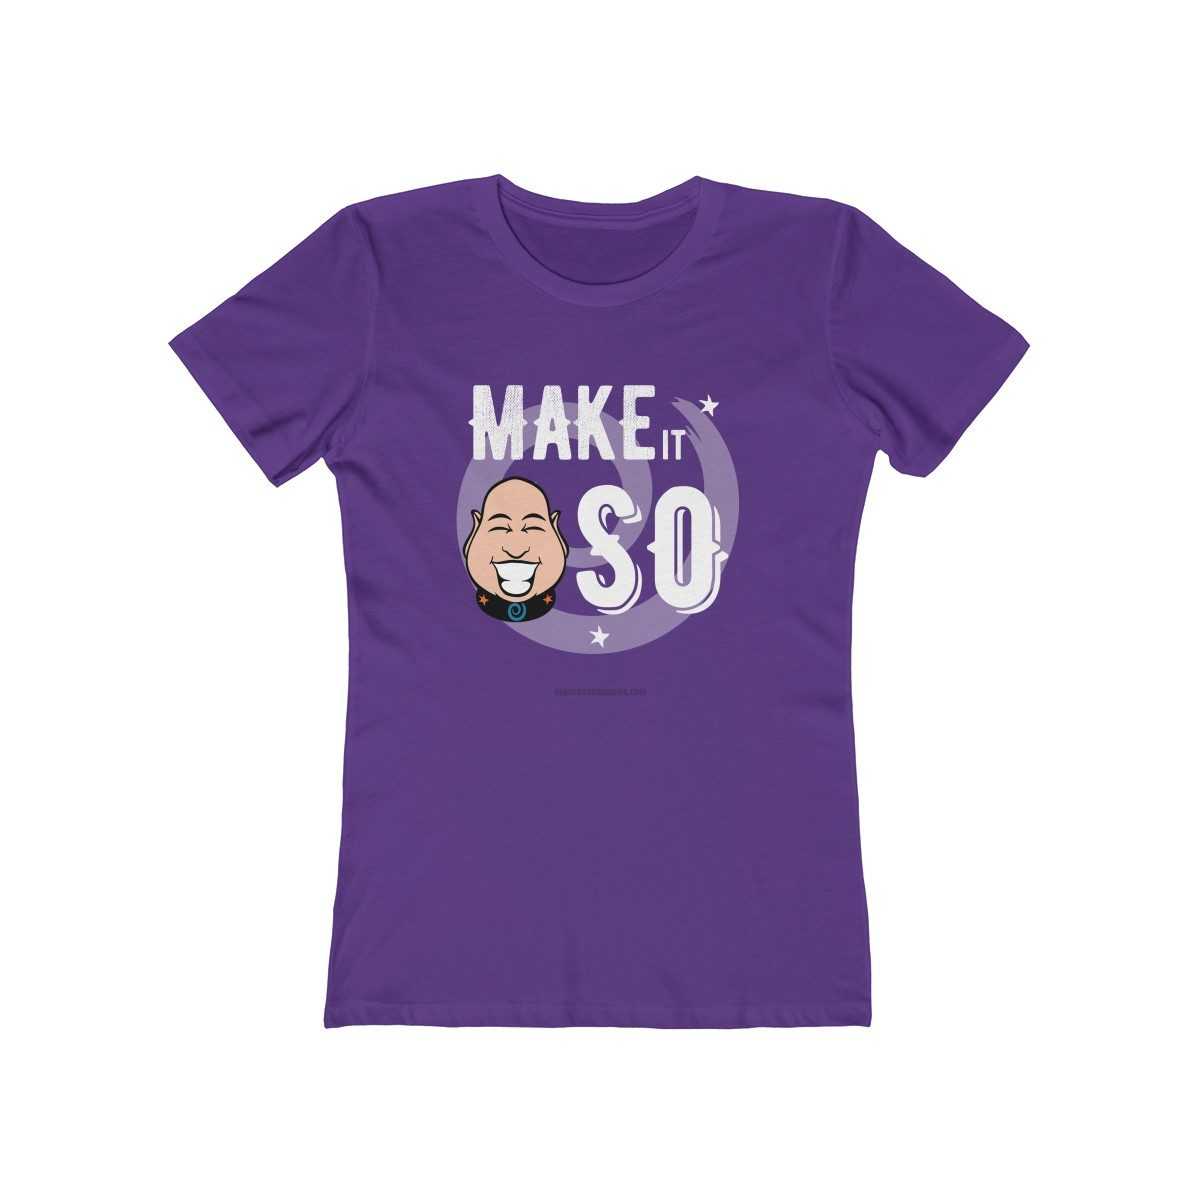 make-it-so-ladies-tshirt-with-sayings-for-women-funky-cool-gift-purple